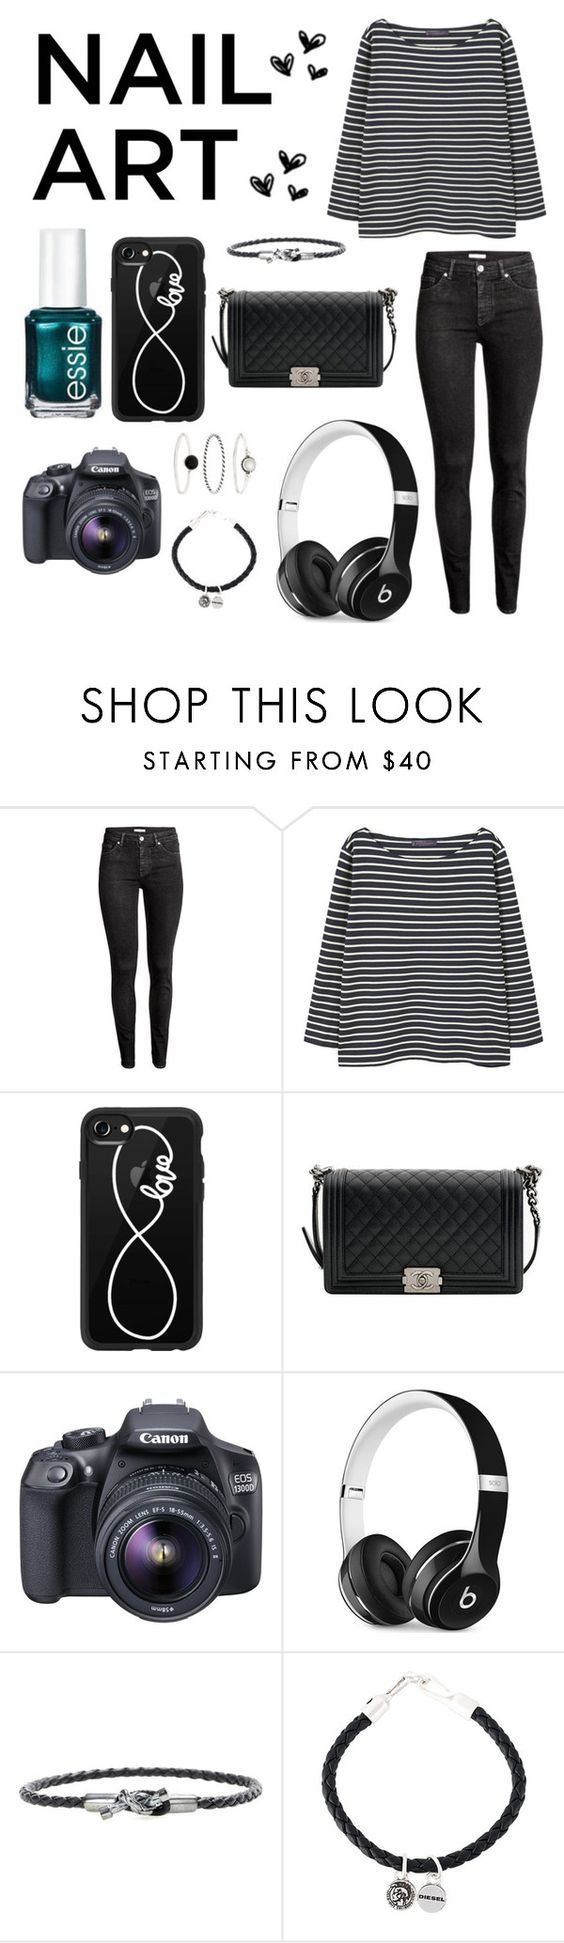 """😍"" by coreycoos ❤ liked on Polyvore featuring Essie, H&M, MANGO, Casetify, Chanel, Eos, Beats by Dr. Dre, Bottega Veneta, Diesel and Accessorize"